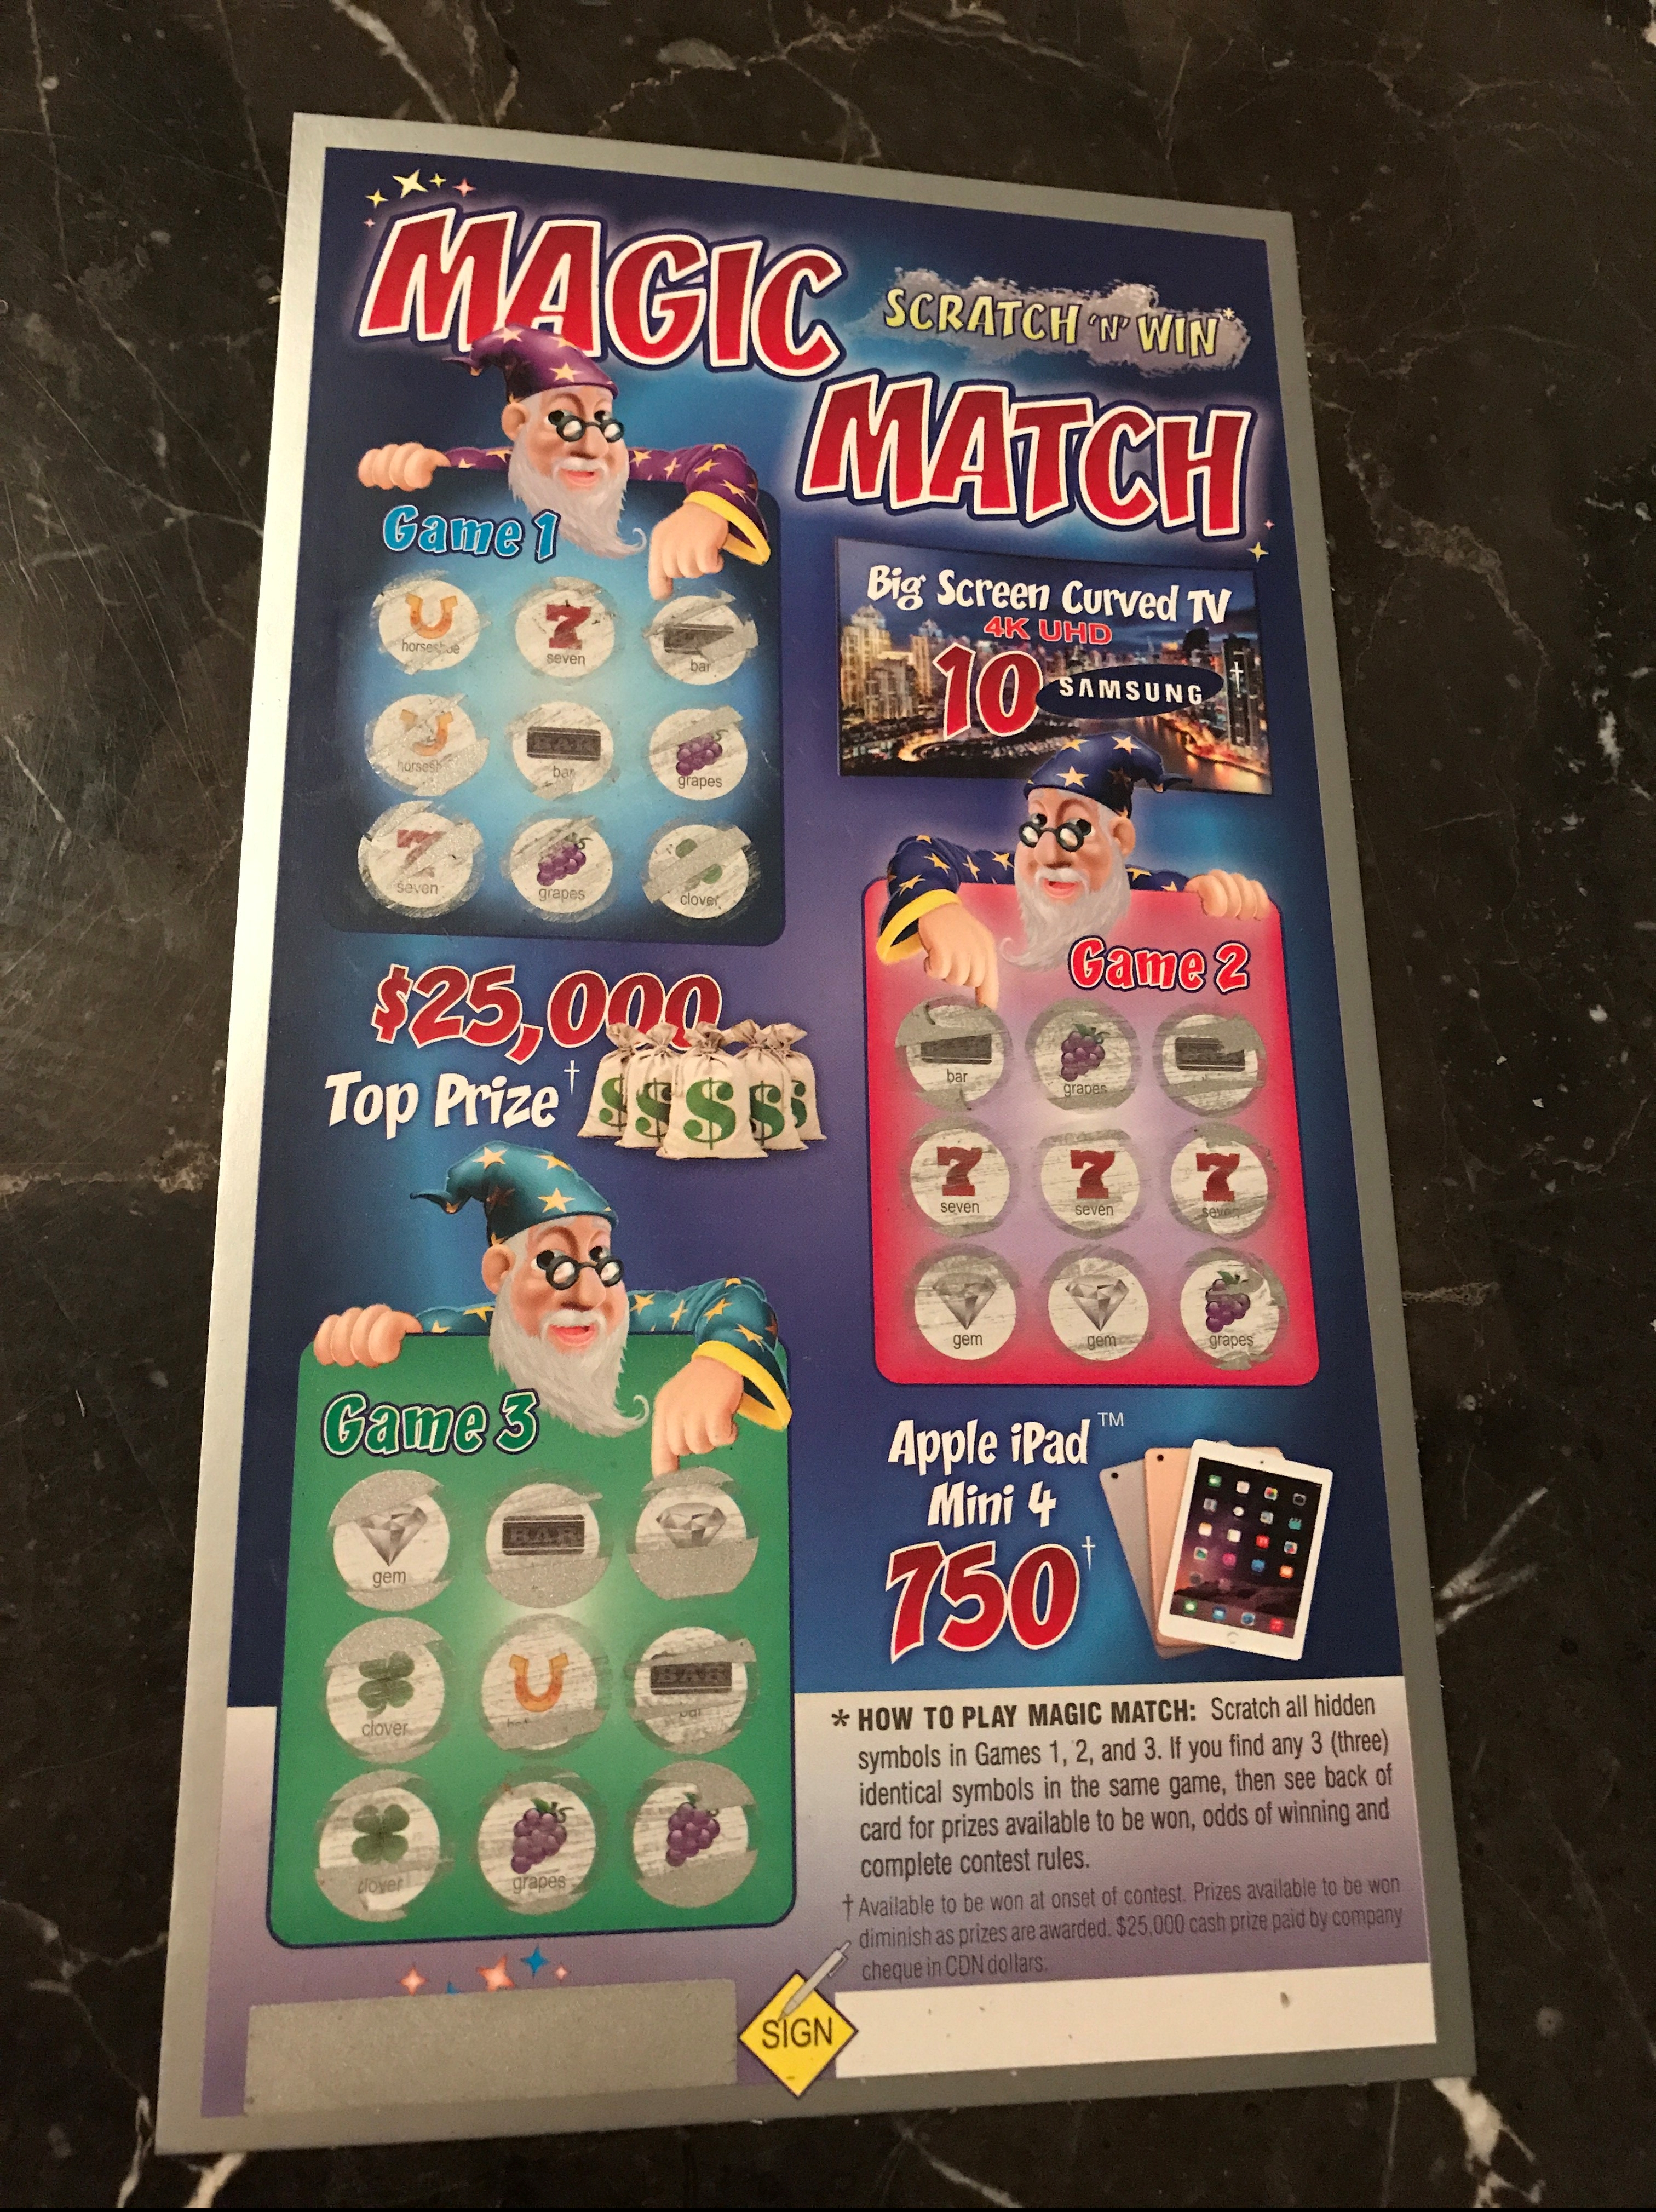 Canada post delivered Magic Match Scratch N Win Tickets